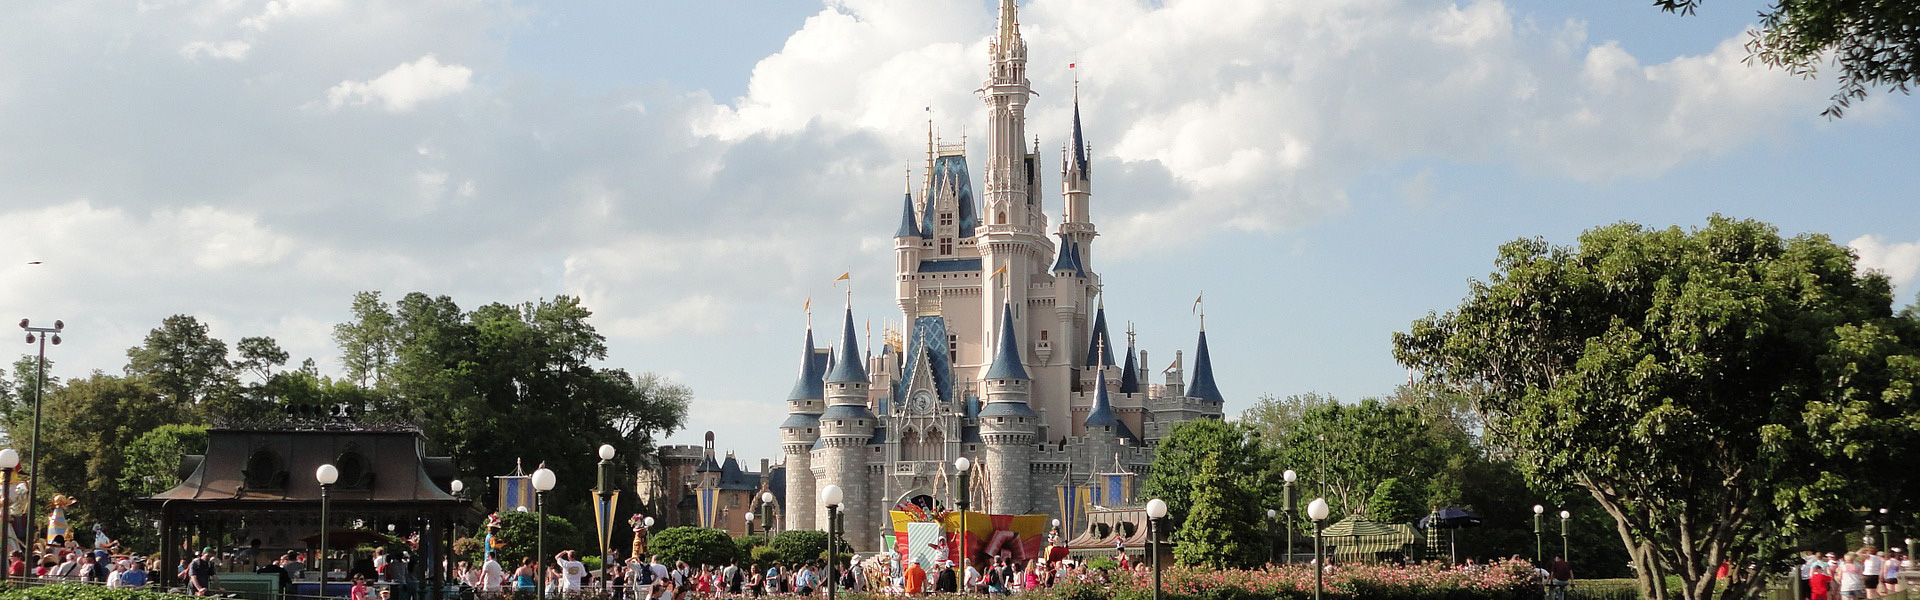 Walt Disney's Magic Kingdom - Cinderella's Castle - Orlando